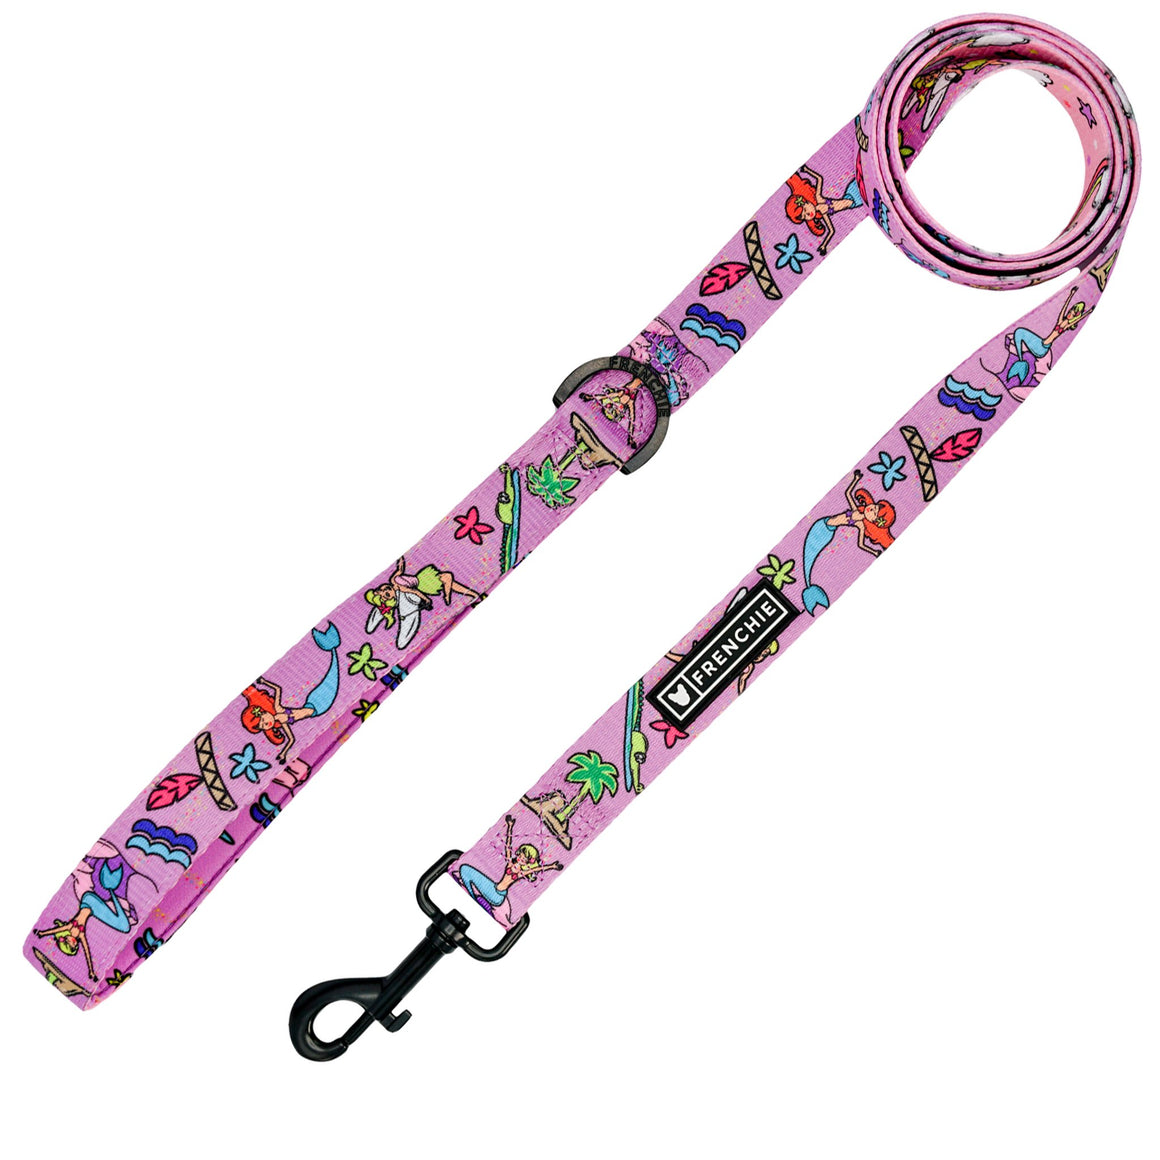 Frenchie Comfort Leash - Mermaid Lagoon